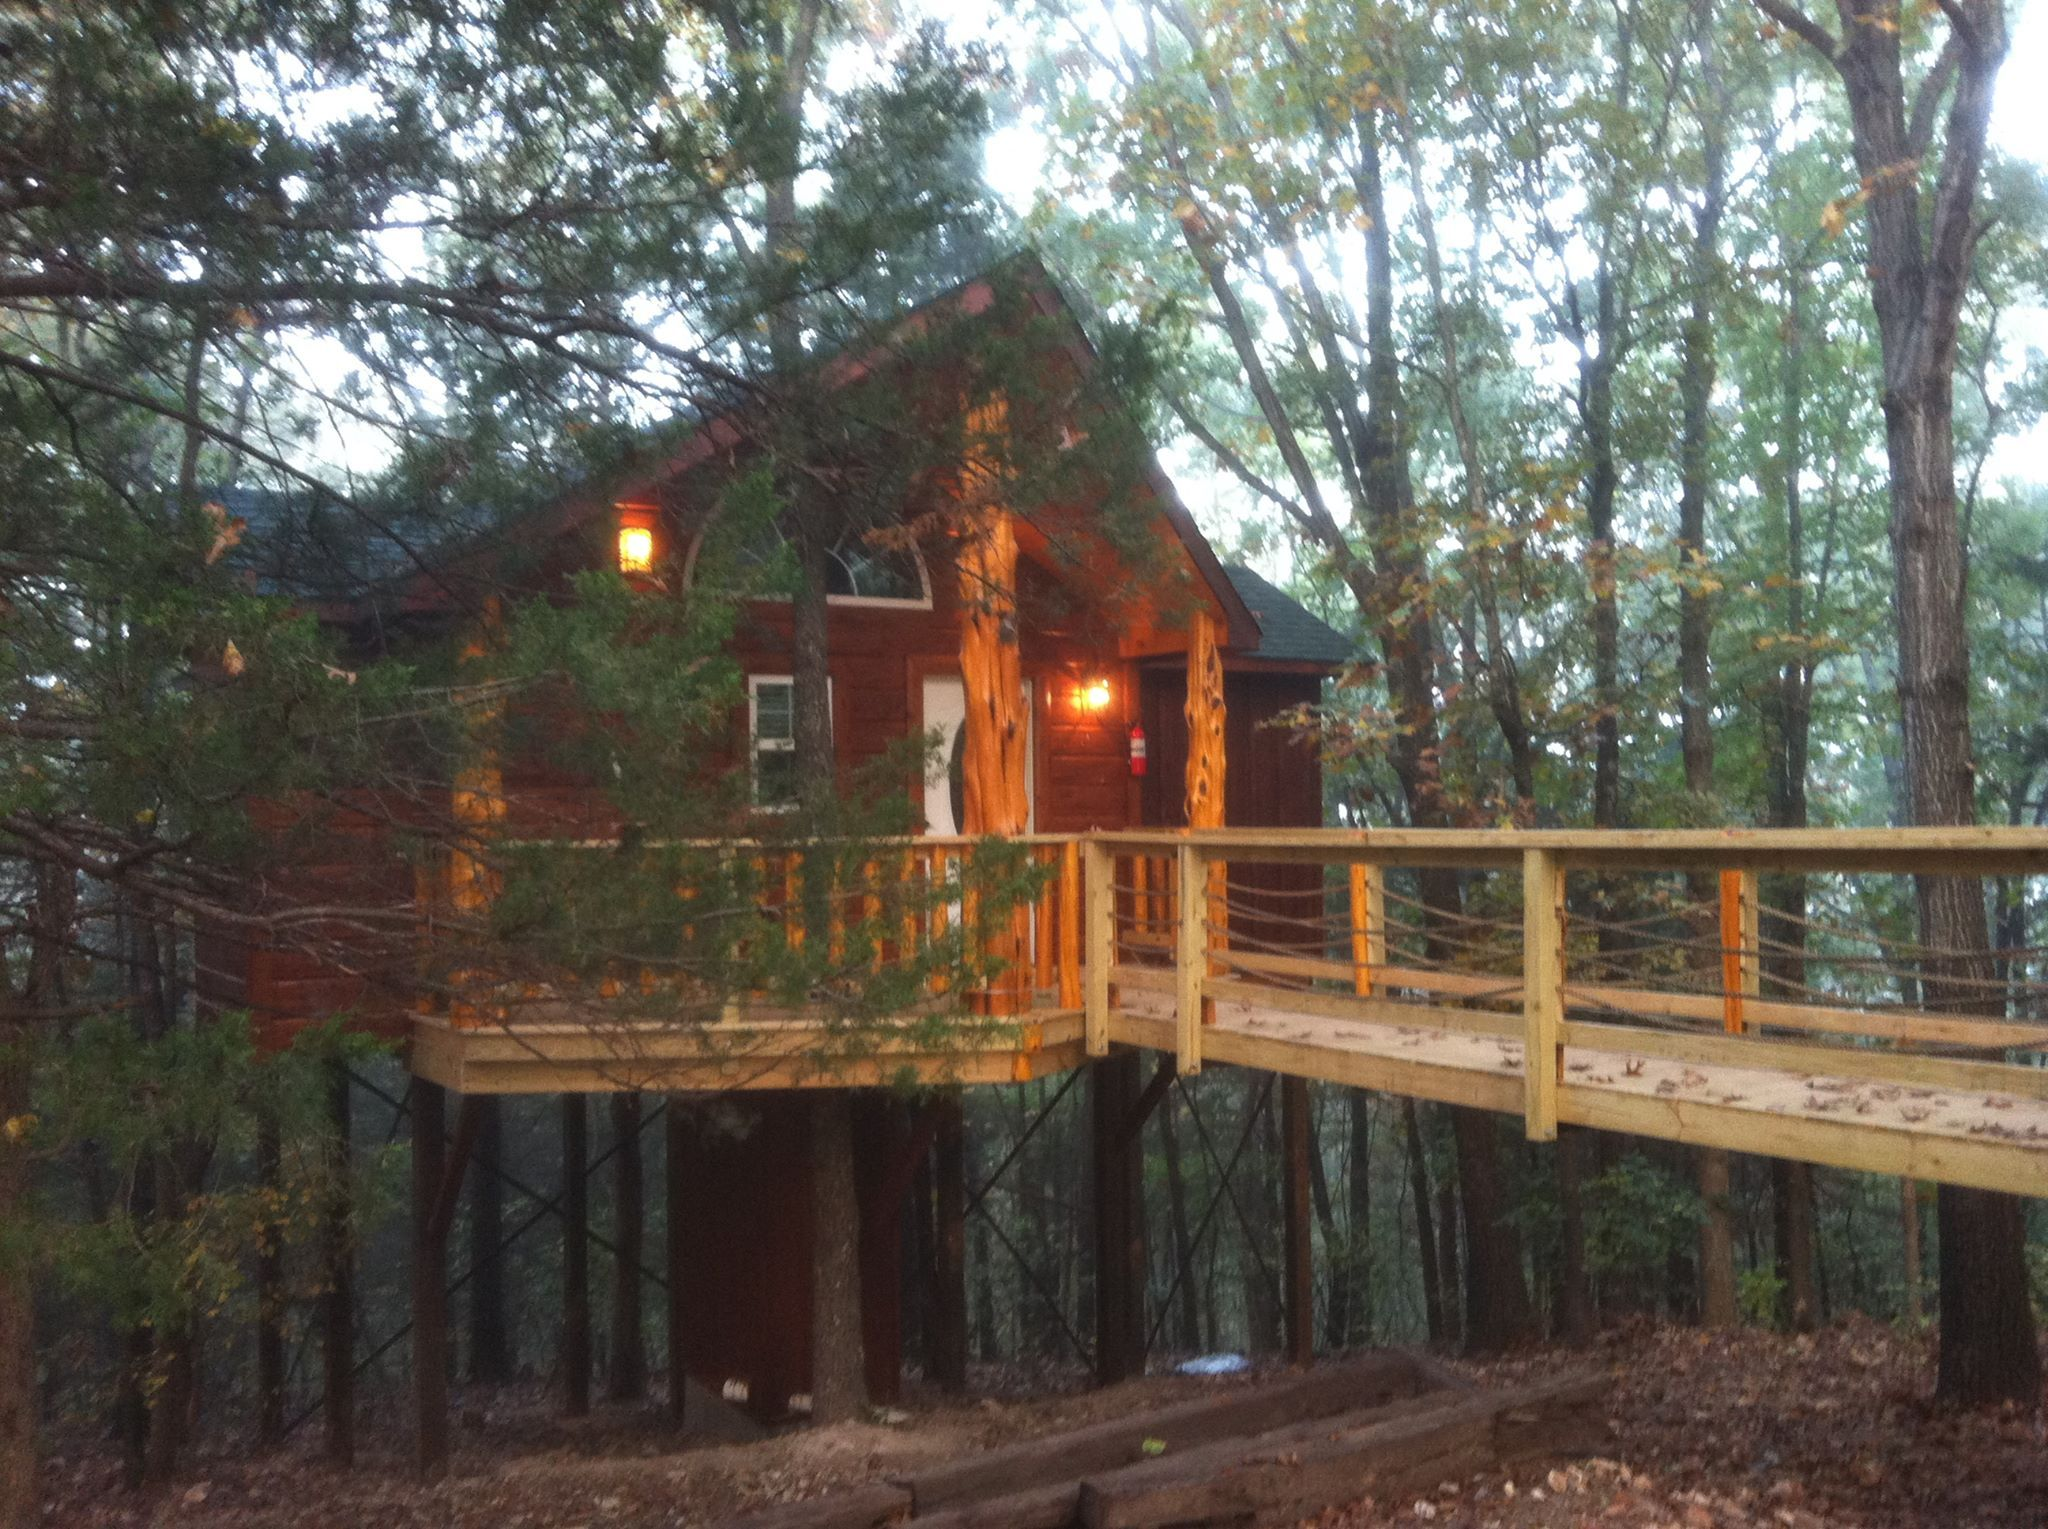 anastasia in underneath cabins sleep treehouse treehouses this ar the oklahoma at forest enchanted o canopy arkansas epic